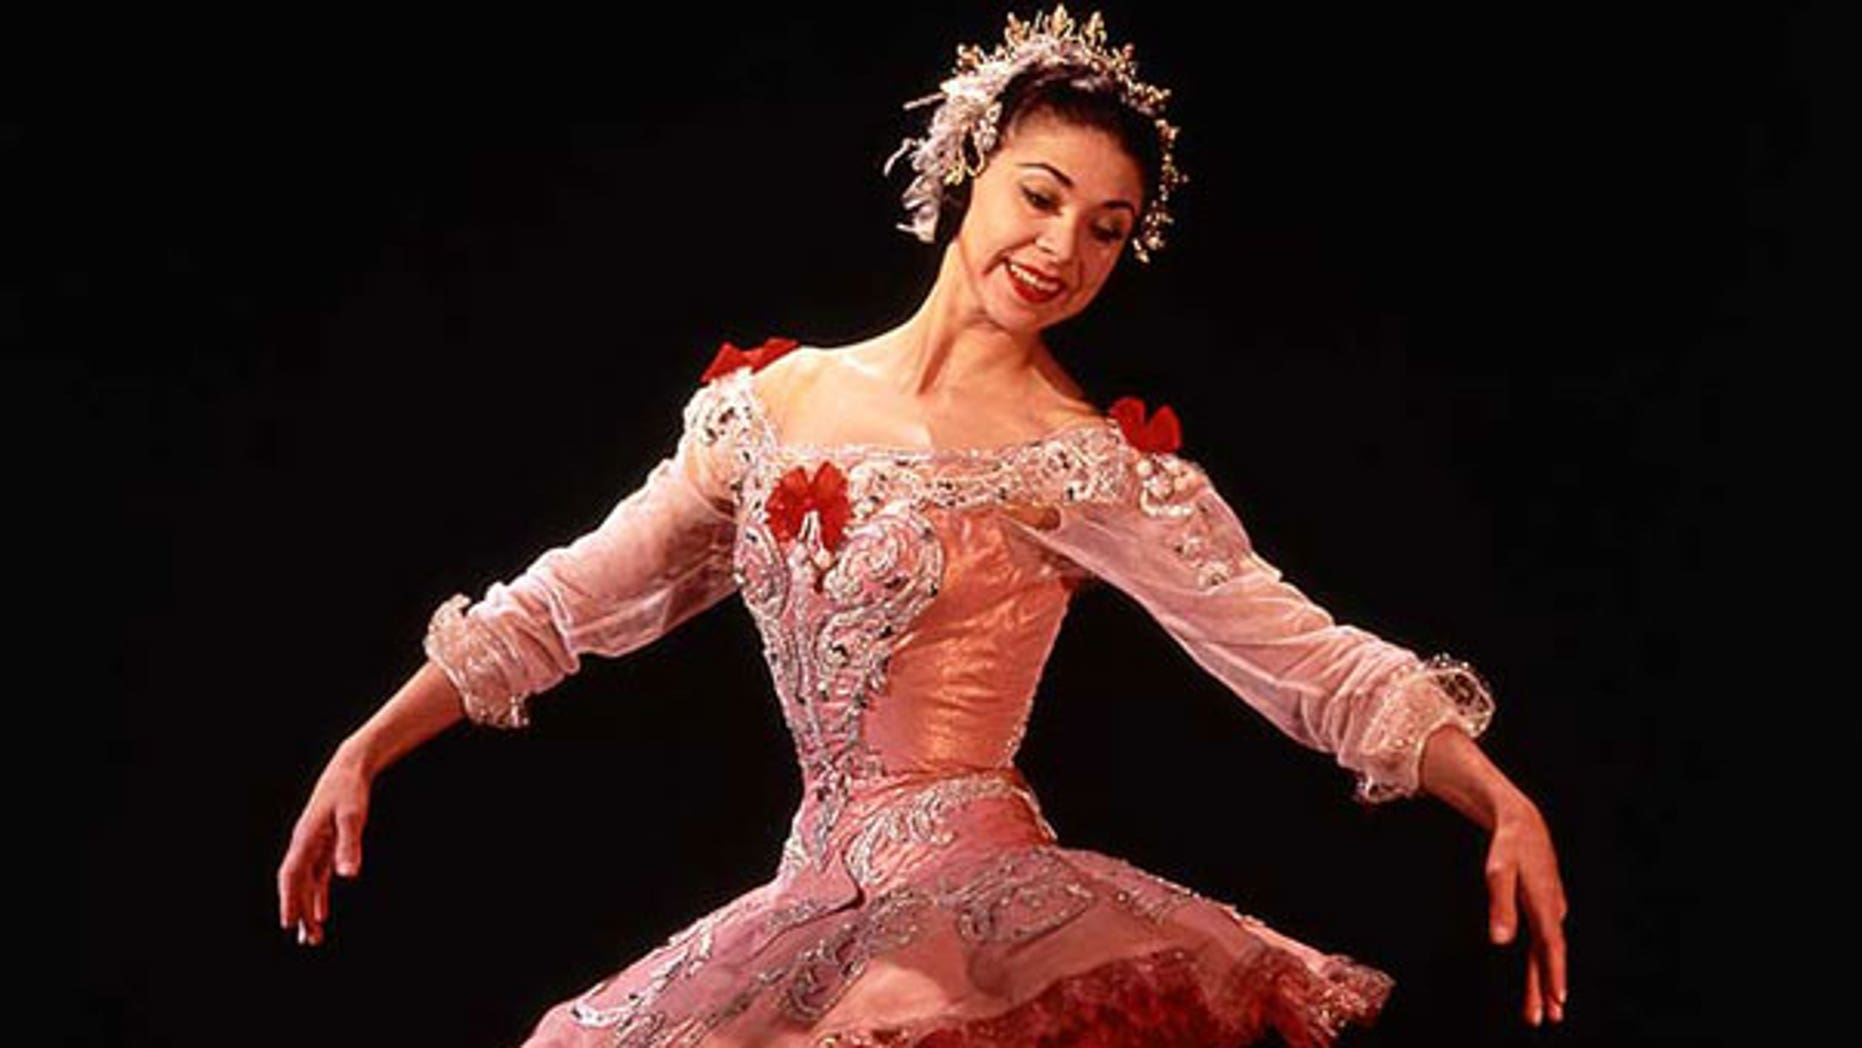 Margot Fonteyn, the former prima ballerina in Britain's Royal Ballet, was involved in a plot to overthrow the government of Panama.